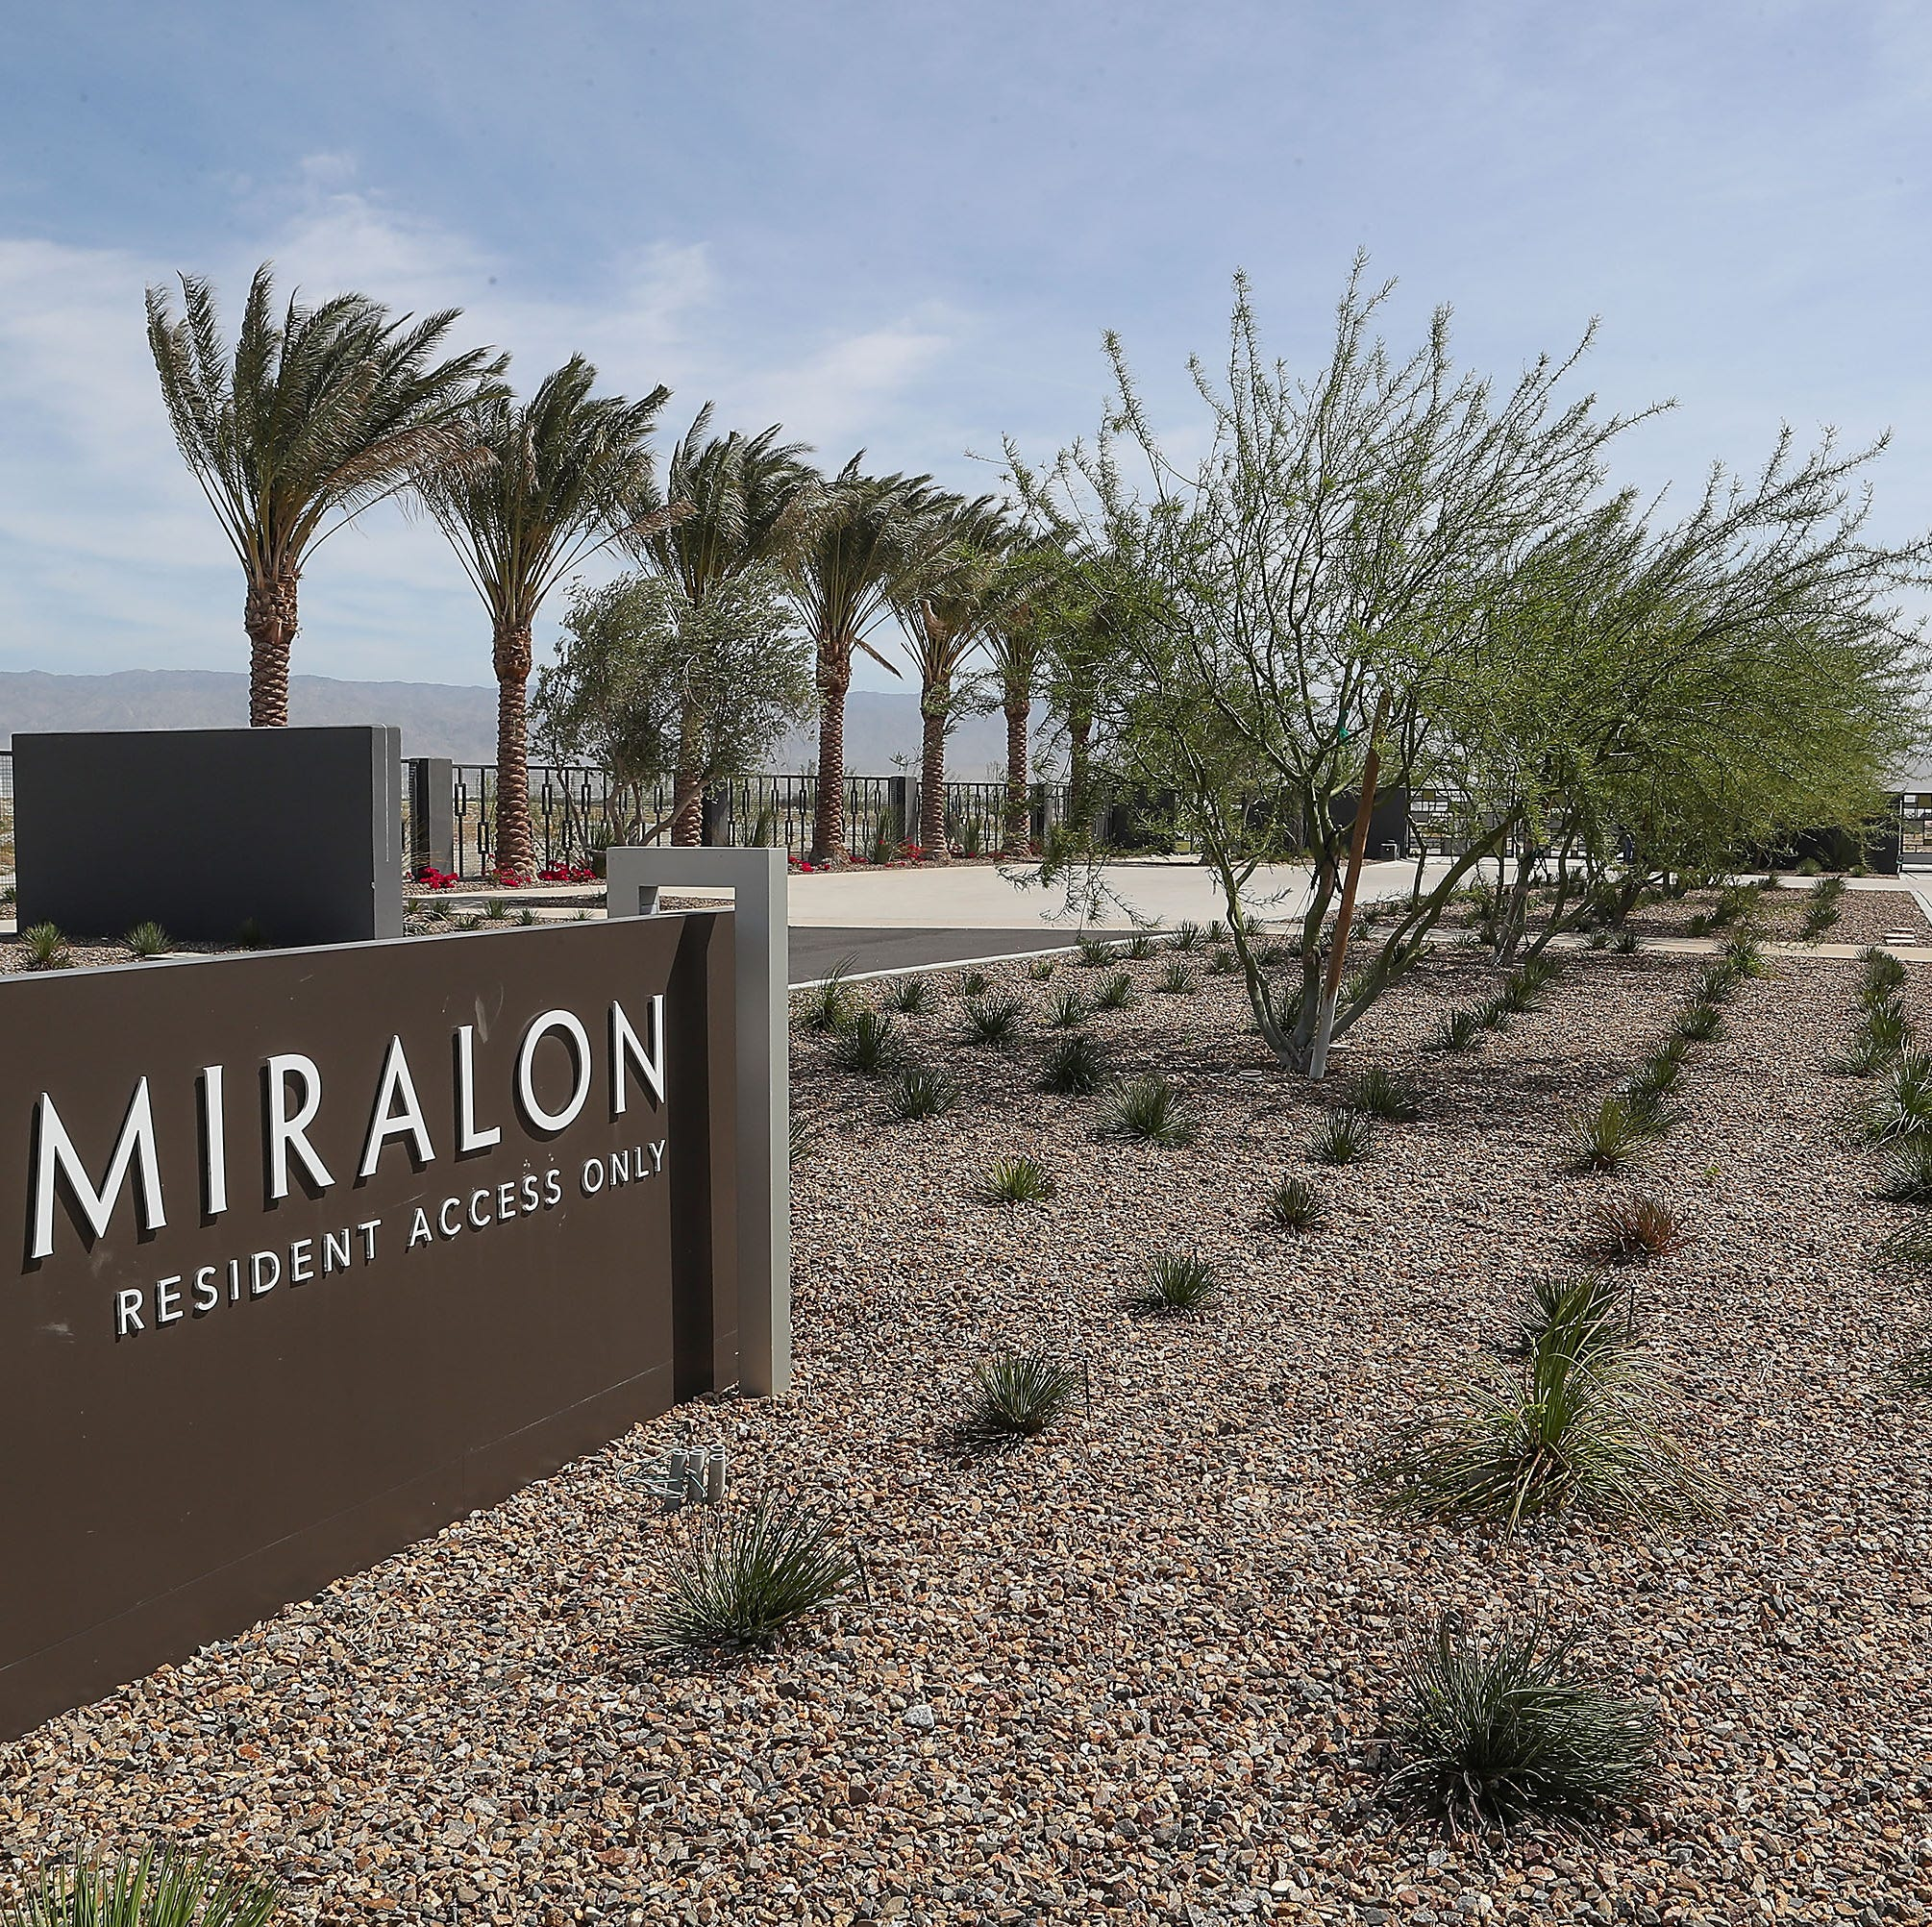 The recession delayed these new Palm Springs communities. Now developers are readying to build